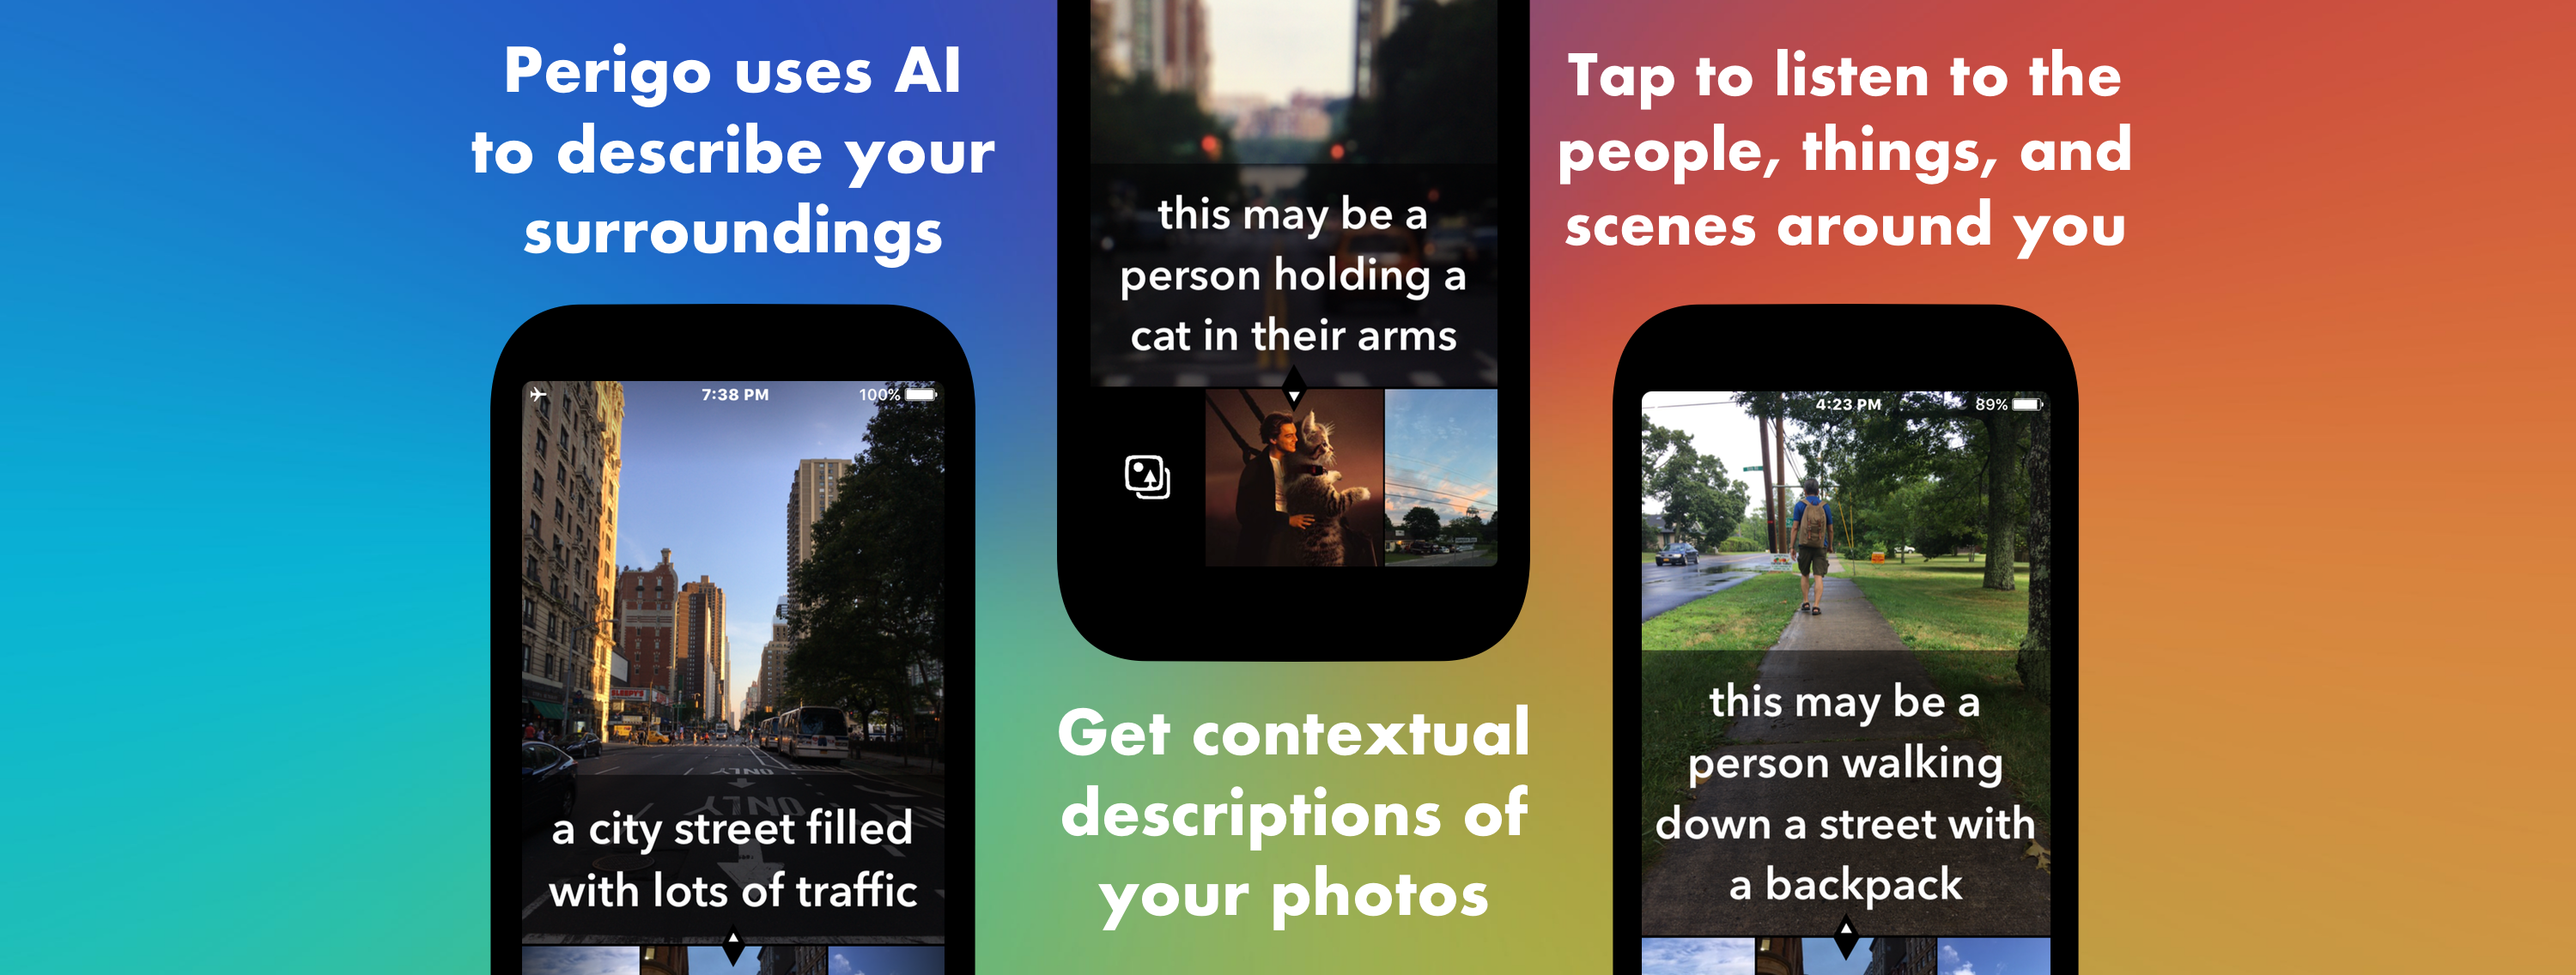 Perigo uses AI to describe your surroundings. You can tap to get contextual descriptions of your photos and listen to the people, things, and scenes around you.